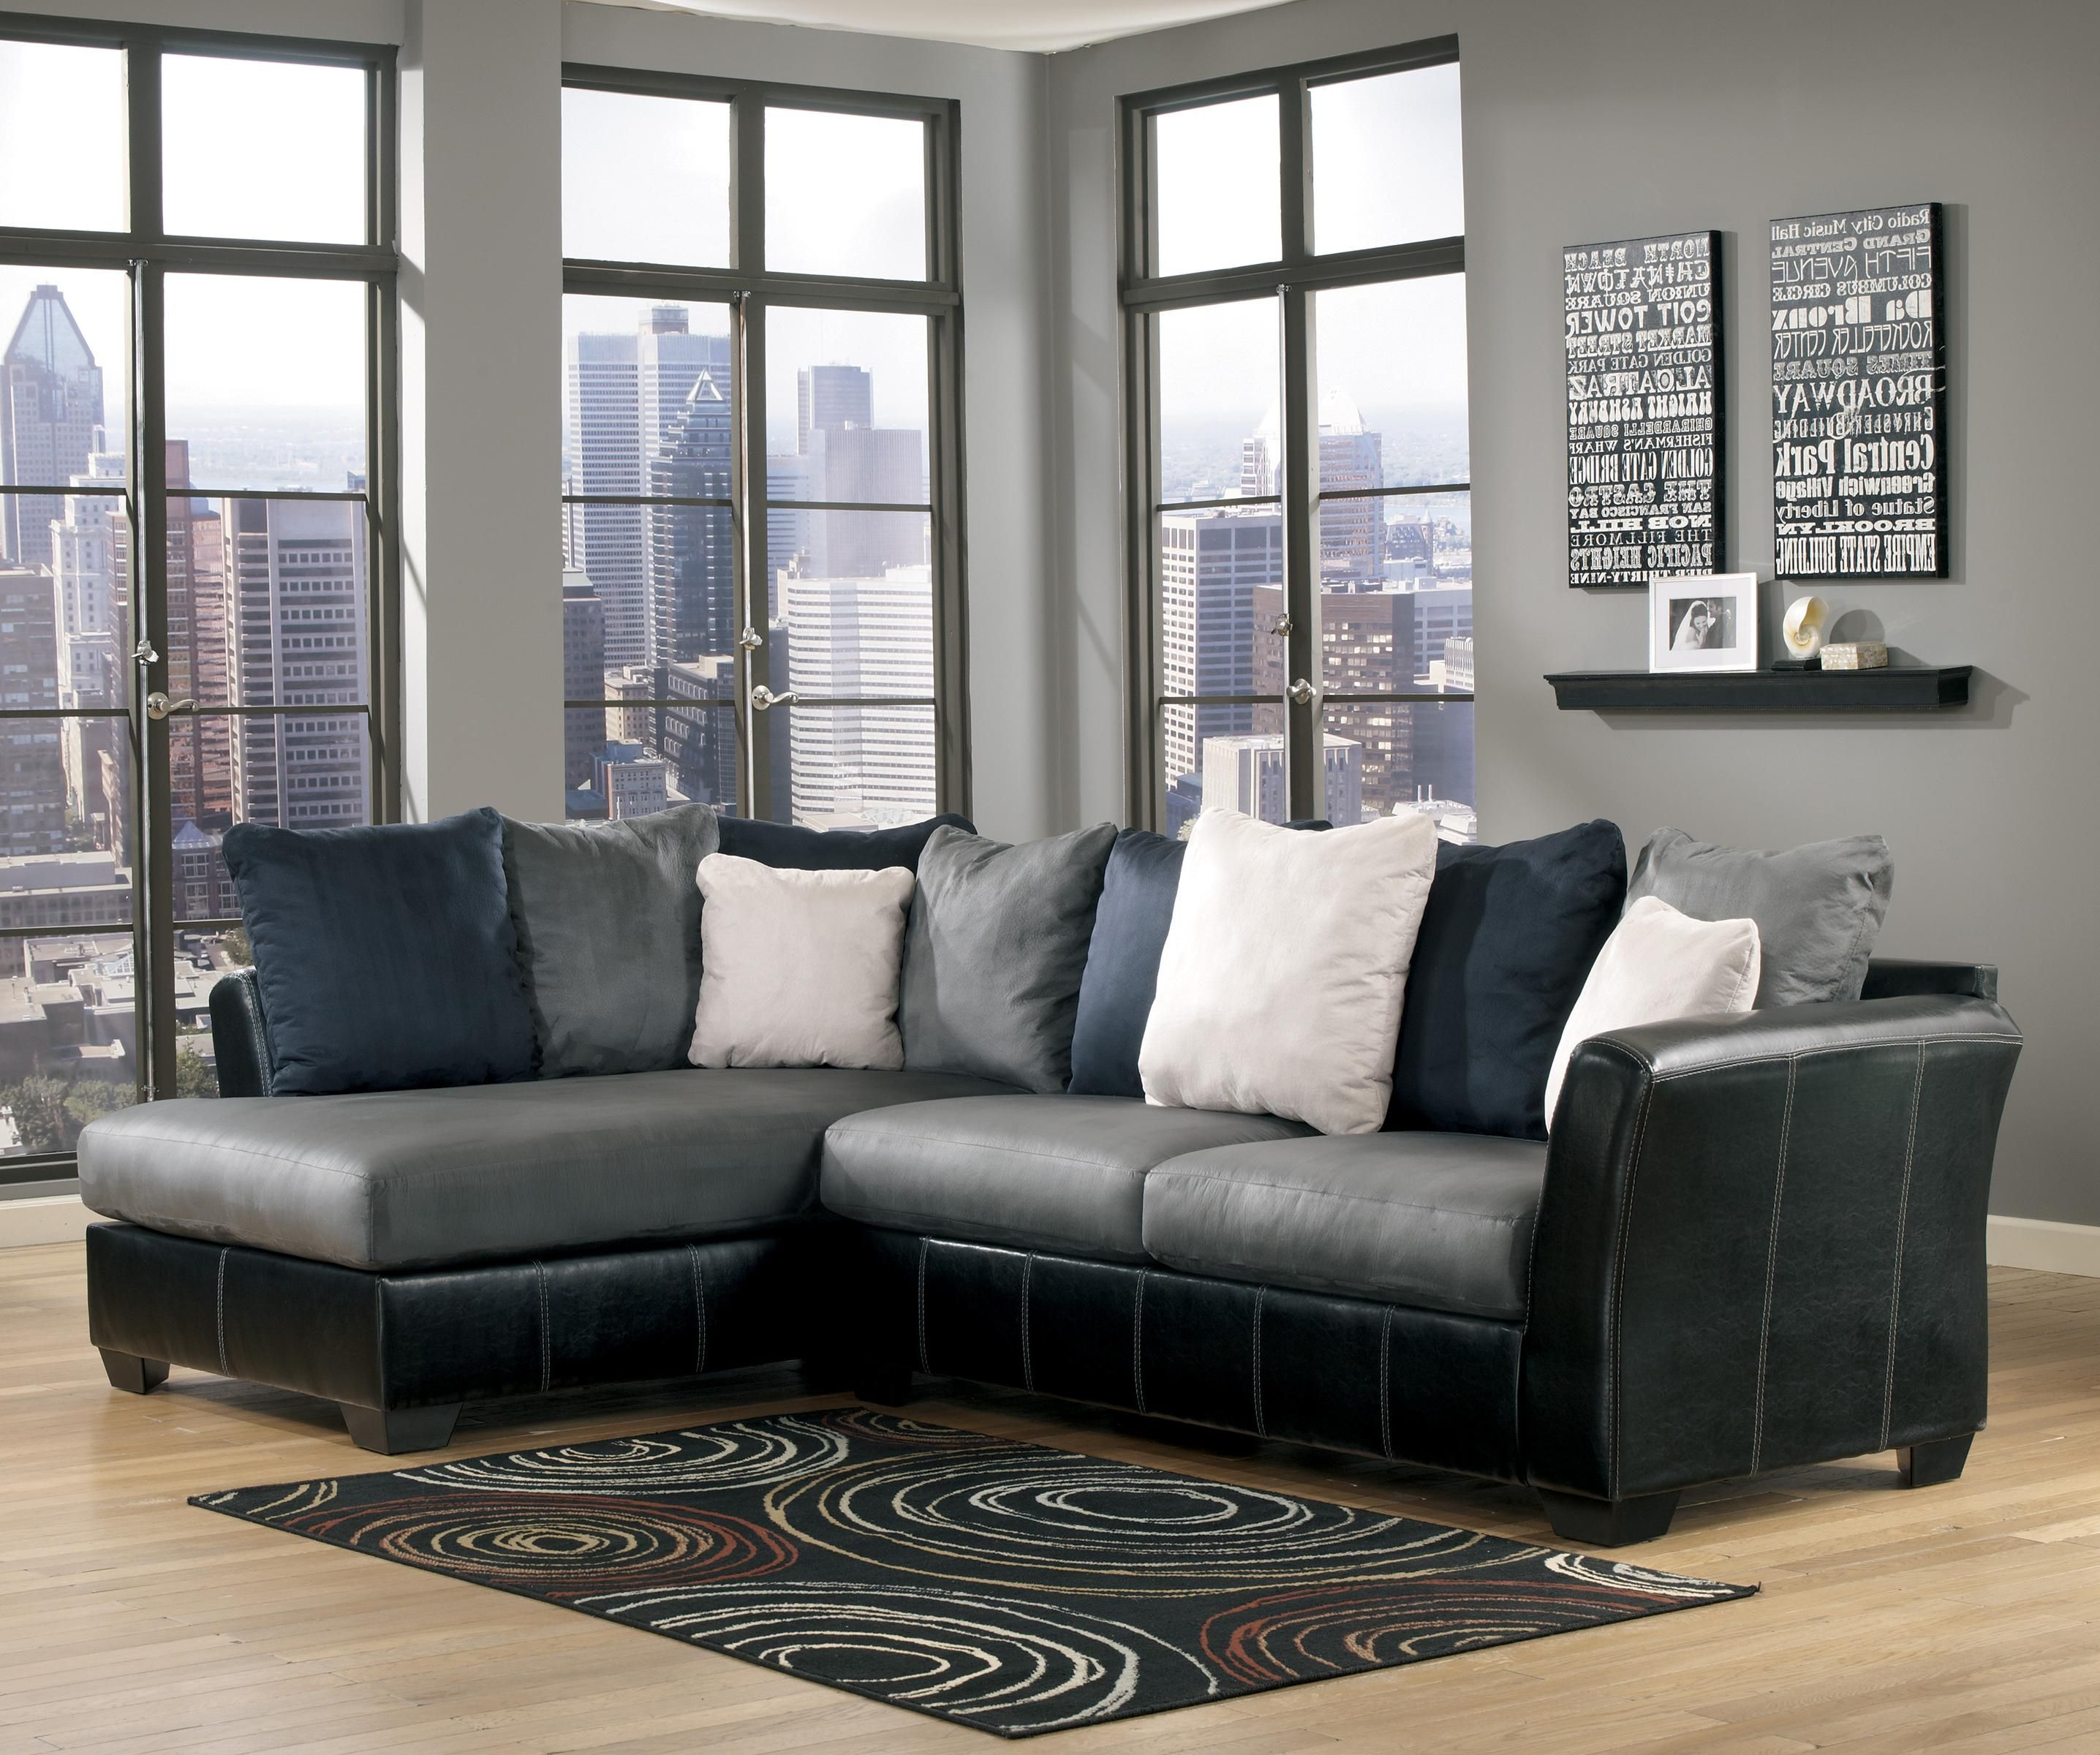 Cobblestone 2-Piece Sectional With Chaise By